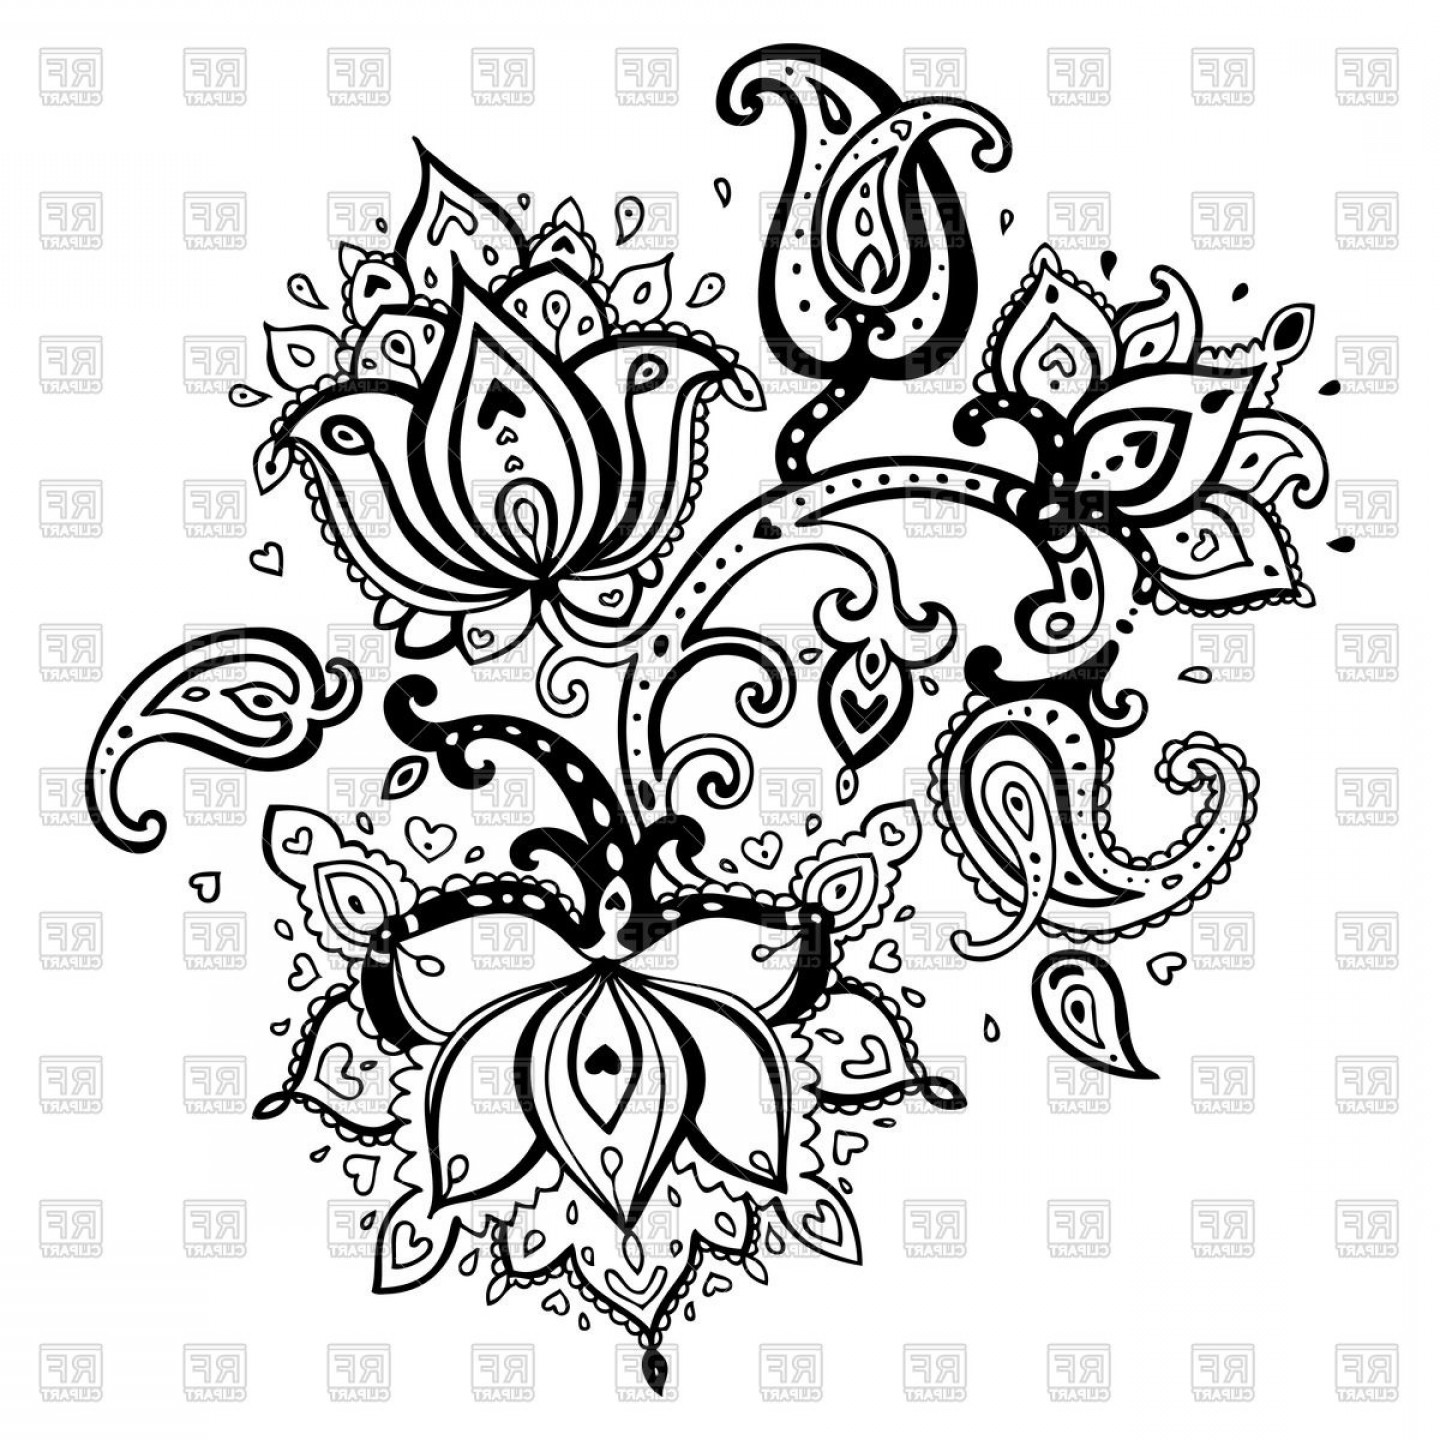 Paisley Swirl Flower Vector: Lotus Flower Of Paisley Ornament Vector Clipart